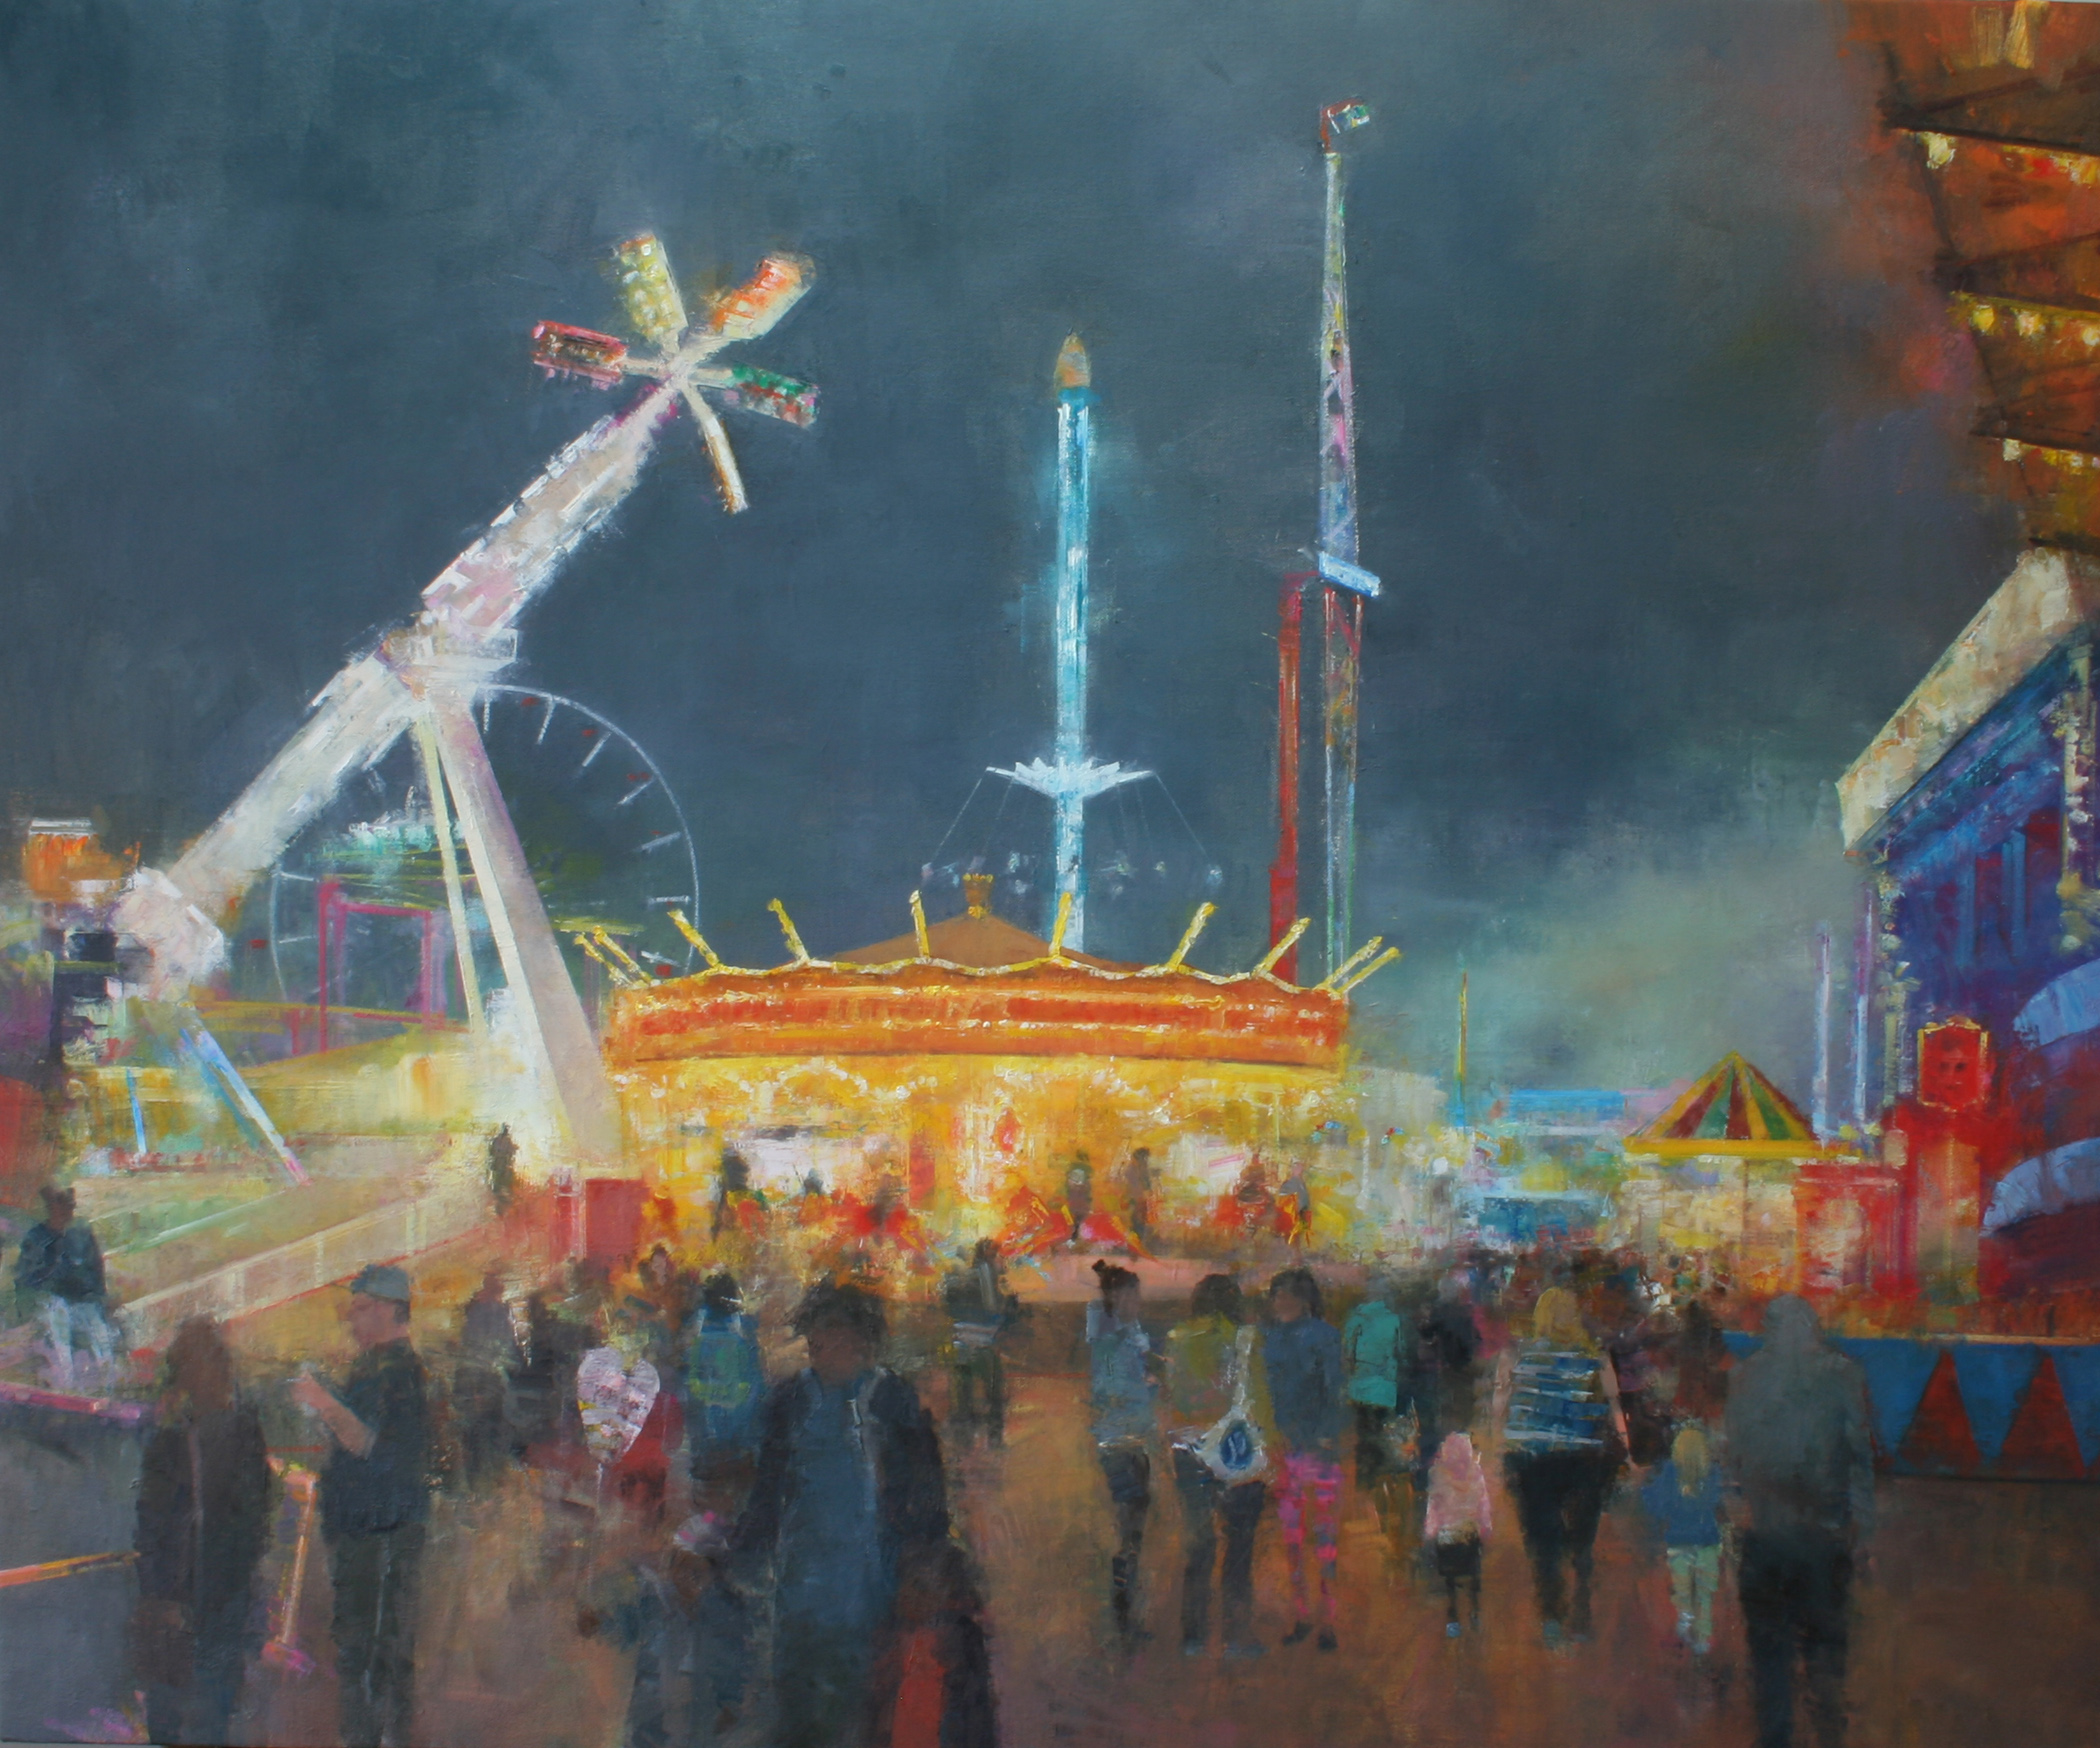 "Goose Fair II, Oil on canvas, 34 x 28"", £2,500 - Sold"